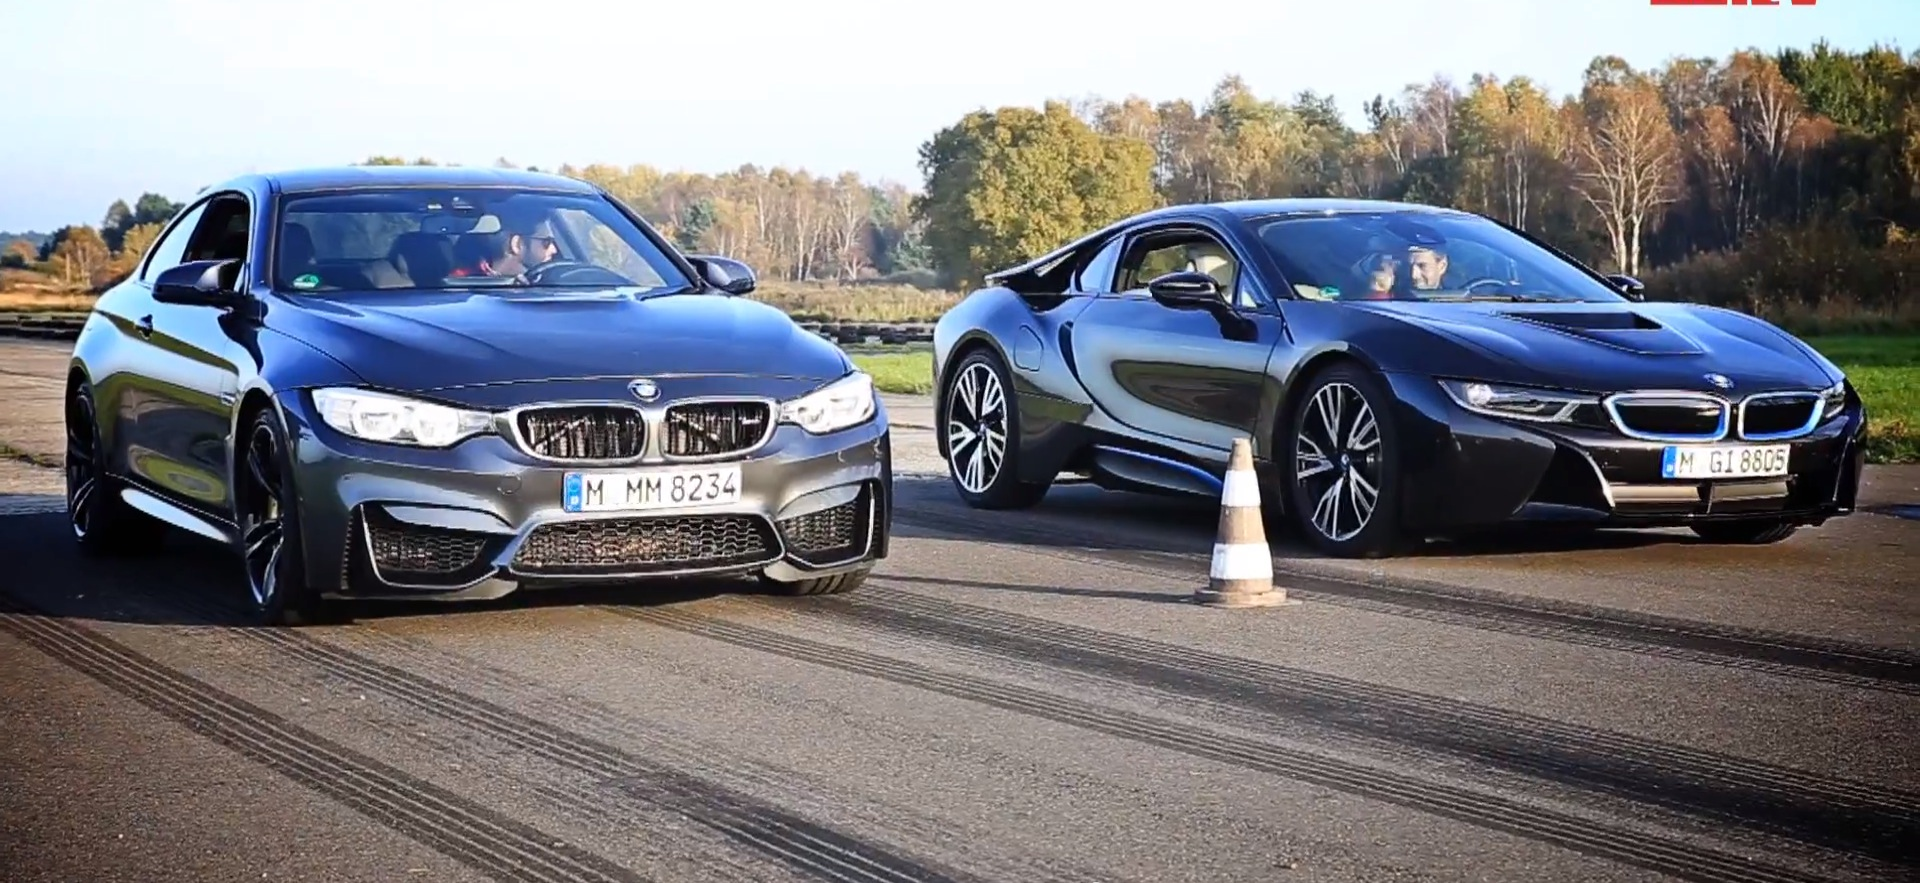 Bmw Models Up For 2015 World Car Of The Year Awards